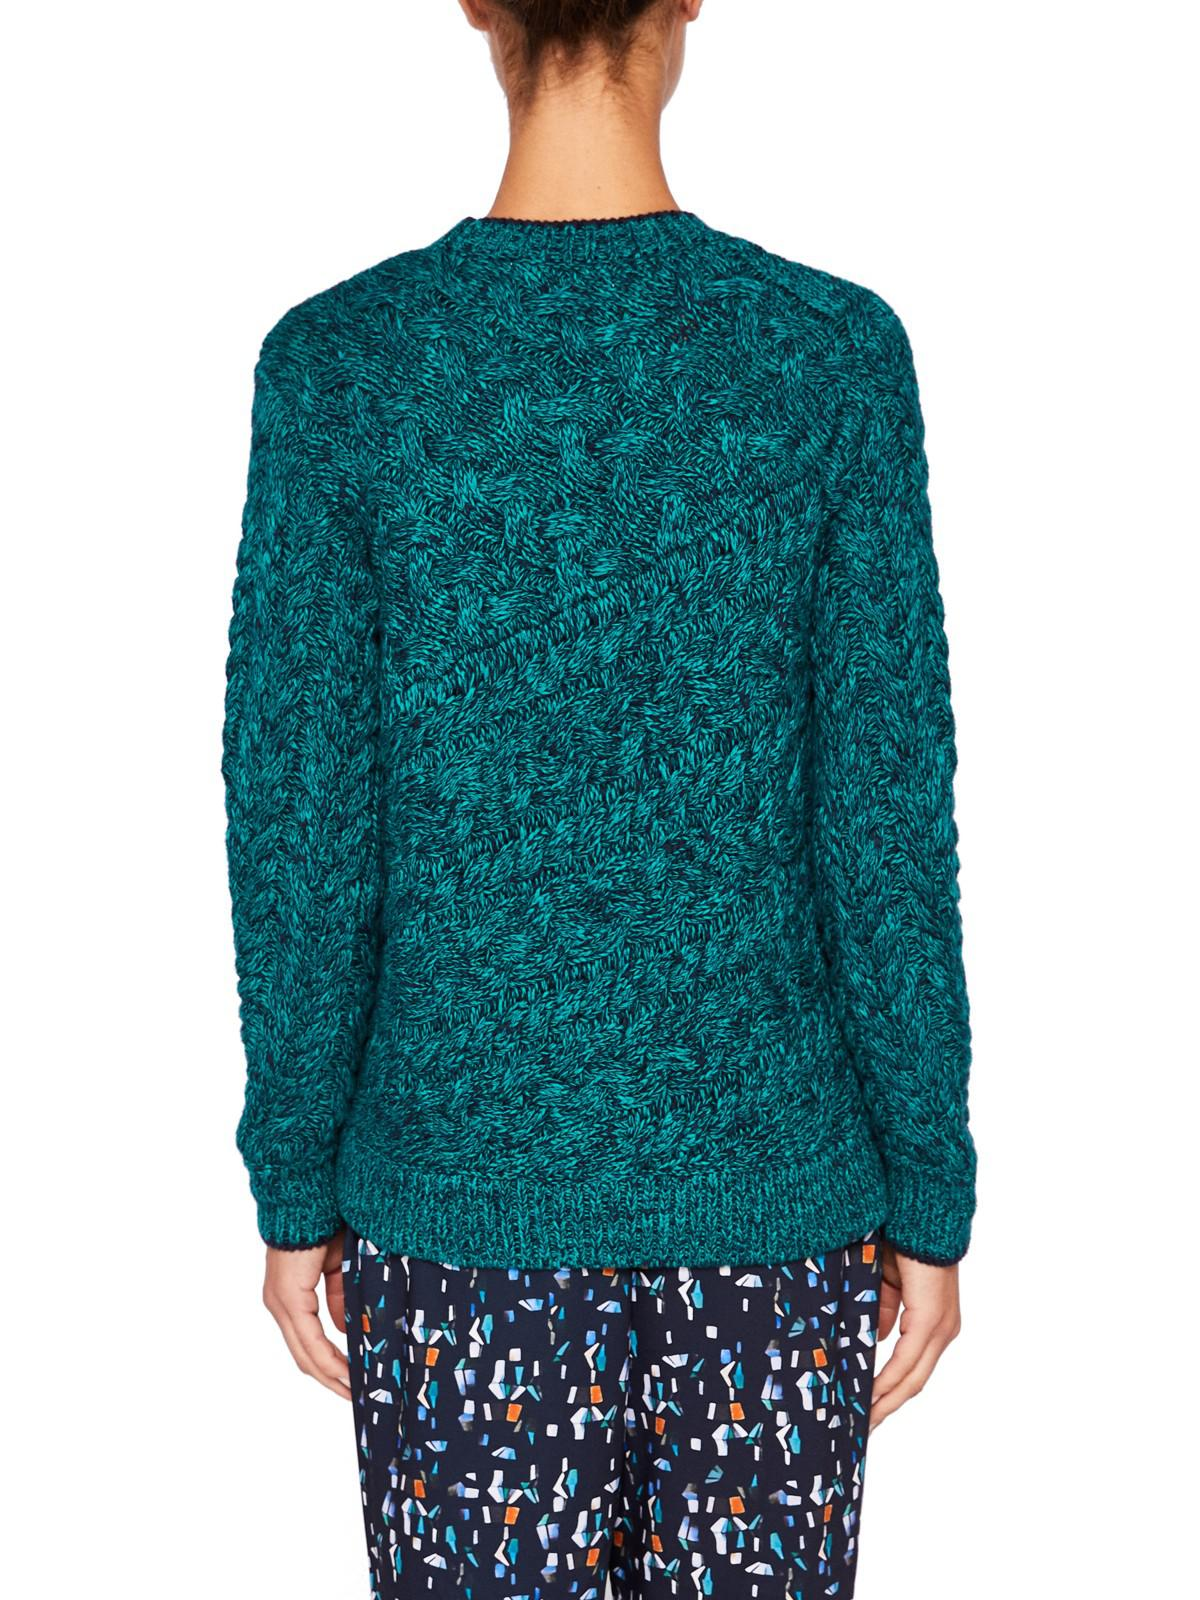 Ted Baker Colour By Numbers Charo Cable Knit Jumper in Green - Lyst